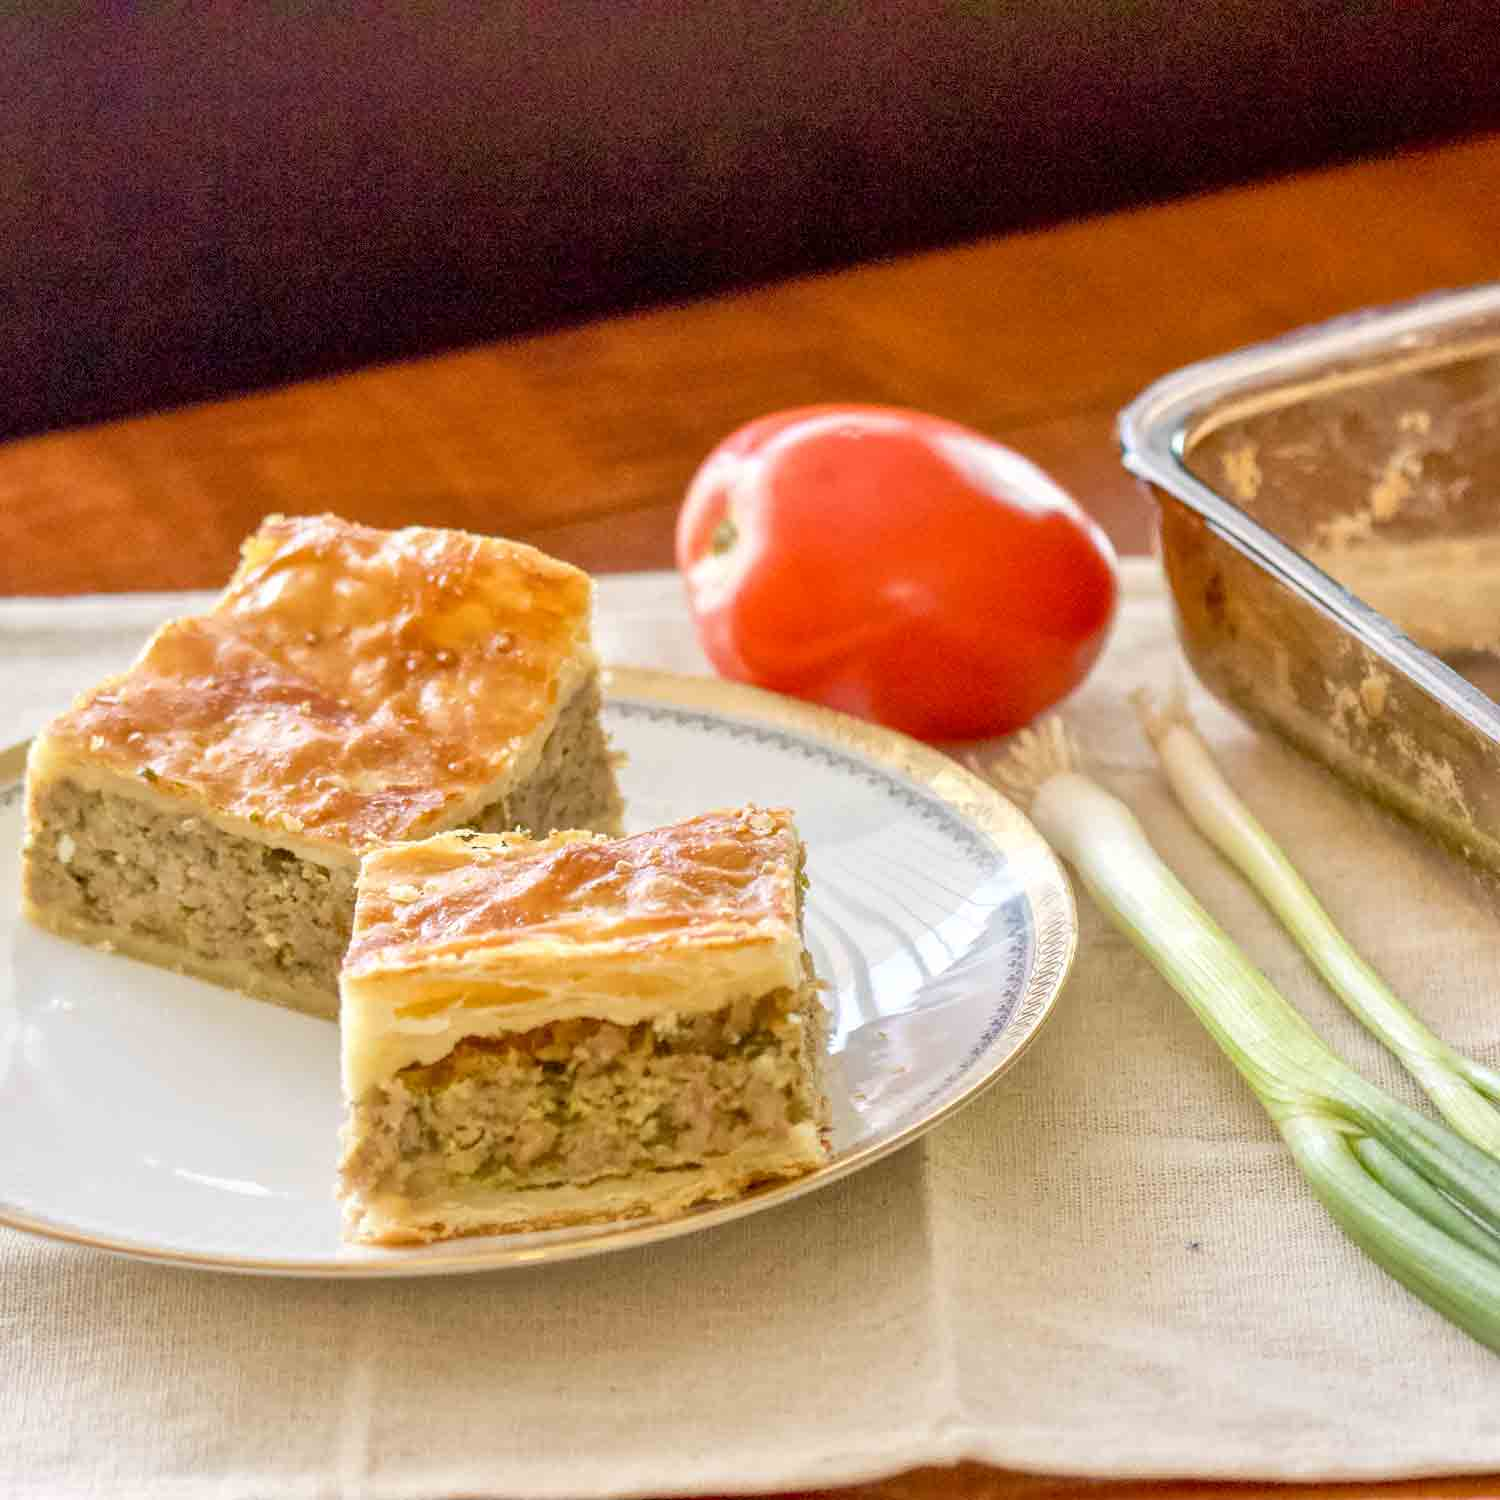 This Romanian Perfect Easter Puff Pastry Minced Meat Pie recipe is a cousin of the Greek Kreatopita pie and a delicious dish I make every Easter. The pie is made with puff pastry and a filling of ground meat that can be pork, beef, or a combination of both. It works great as an appetizer for the Easter meal.